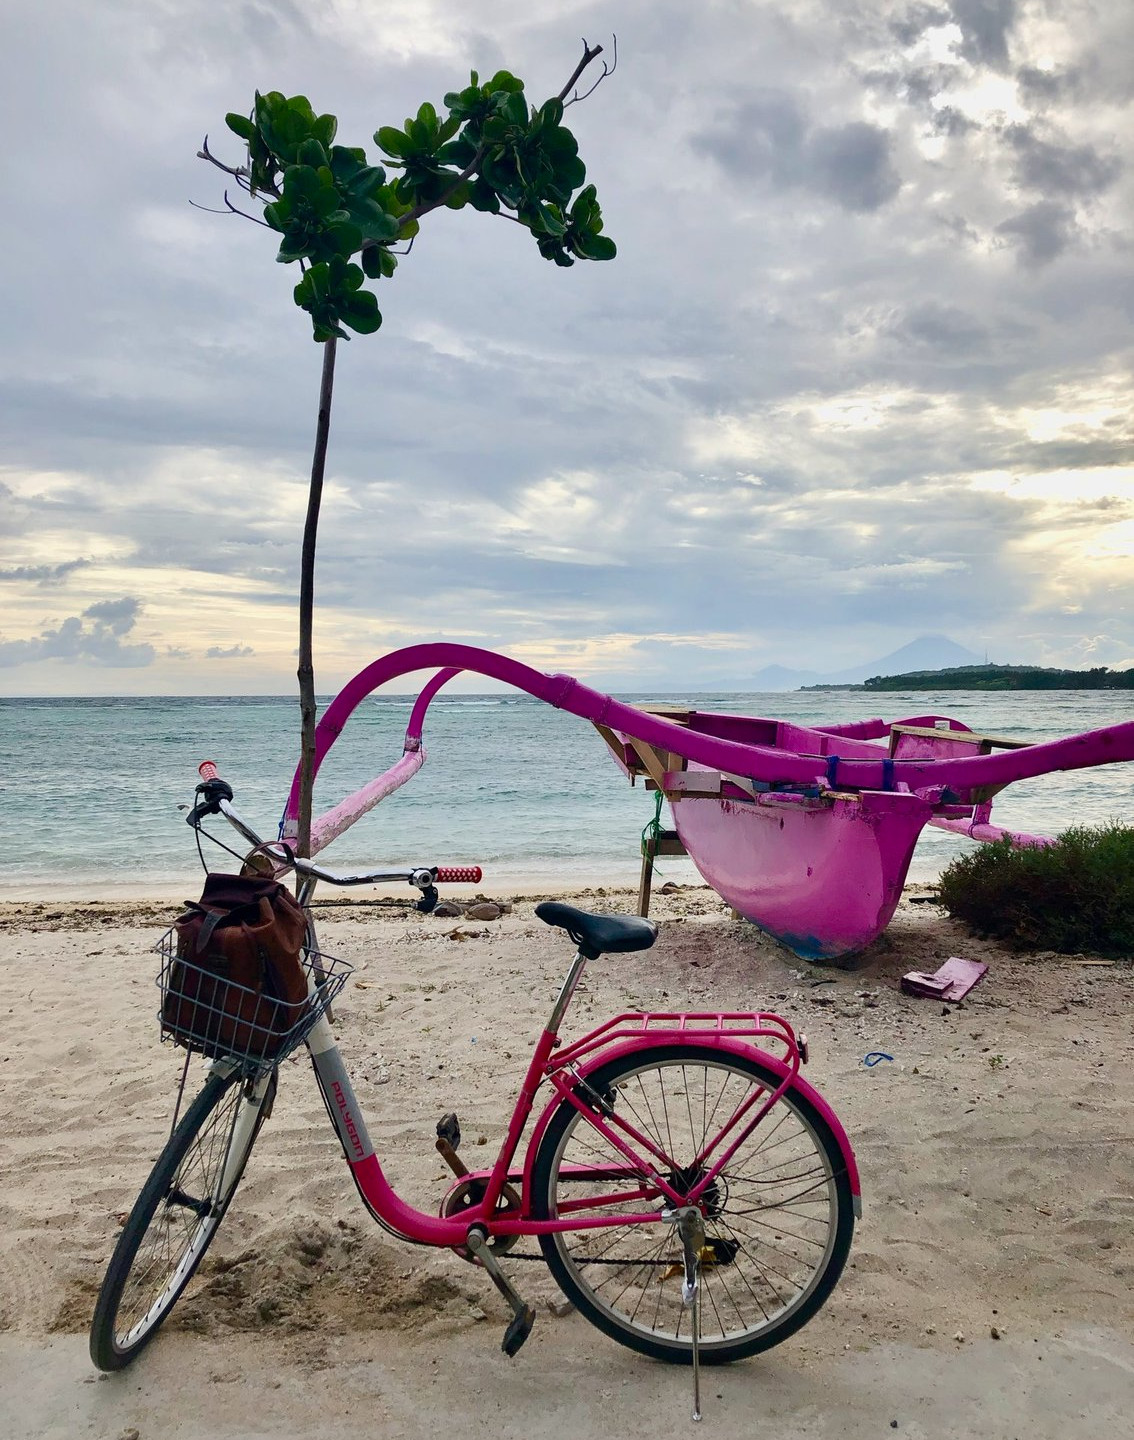 Pink bicycle in front of pink boat at the beach